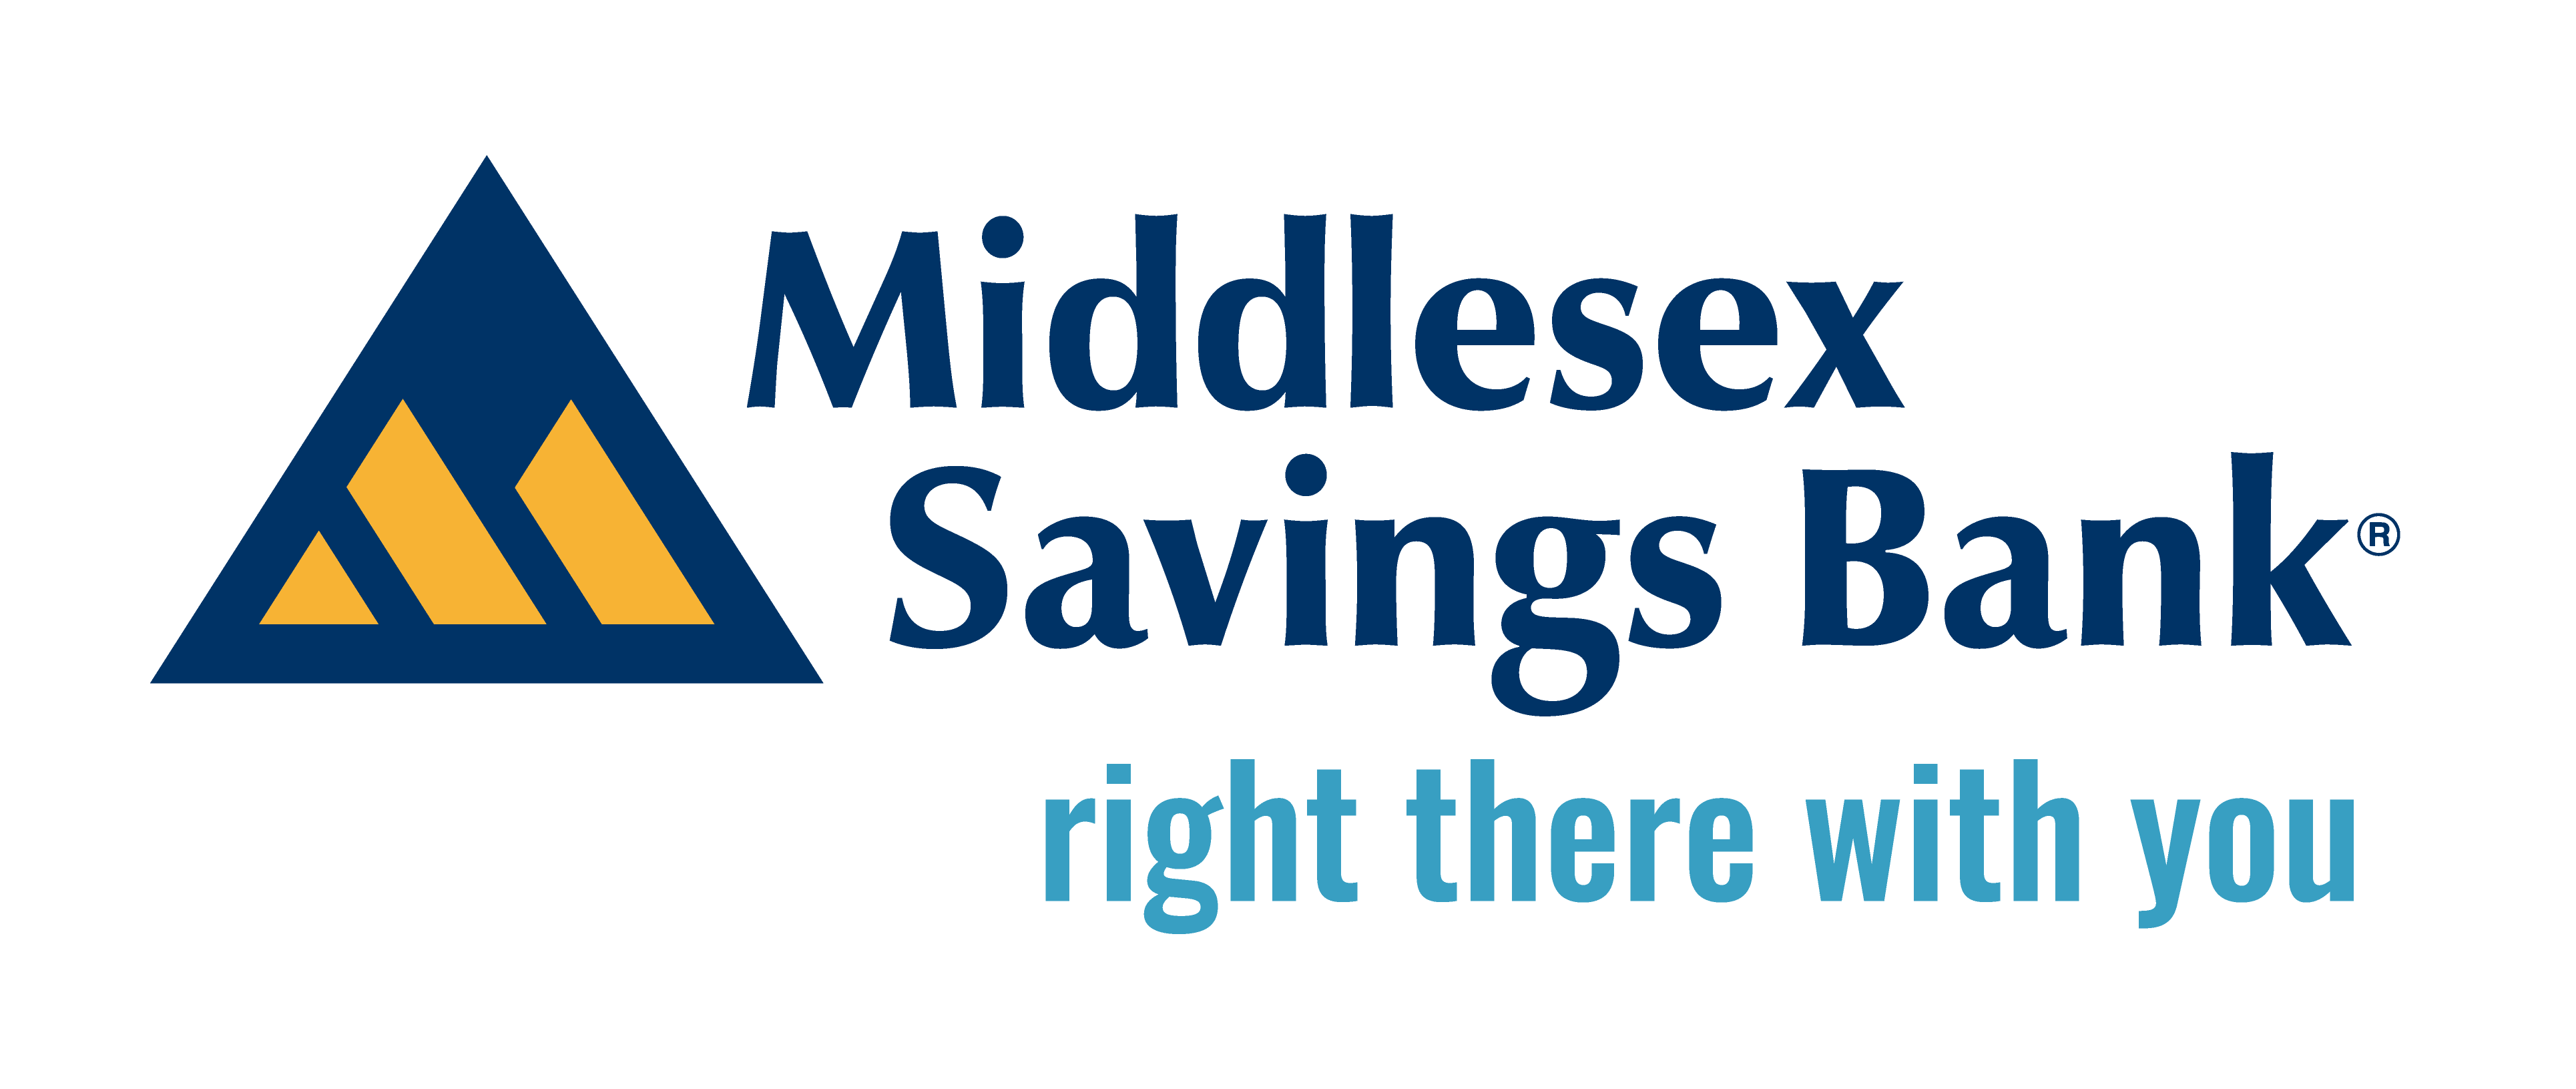 Middlesex Savings Bank Charitable Foundation